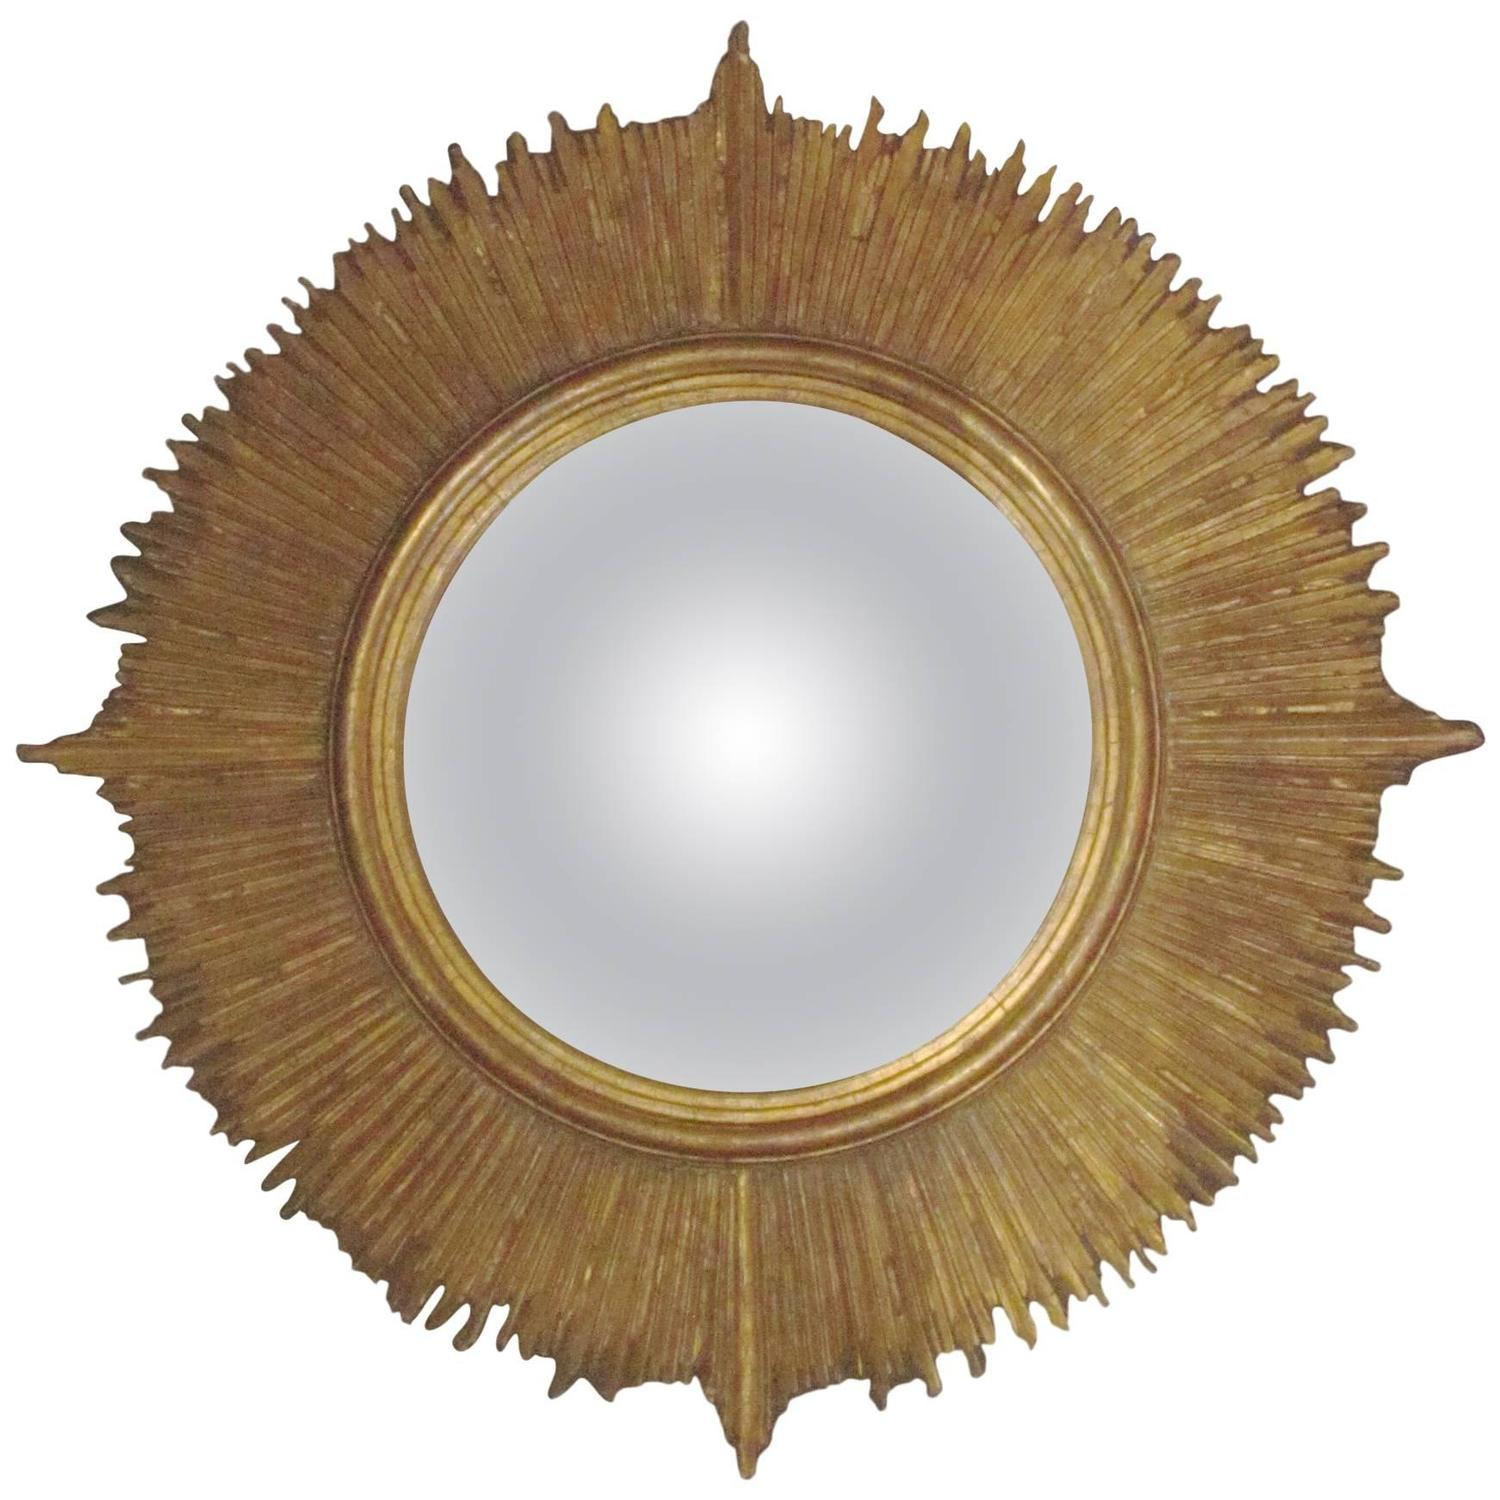 Sunburst gold gilt large convex mirror france 1950s at for Big gold mirror